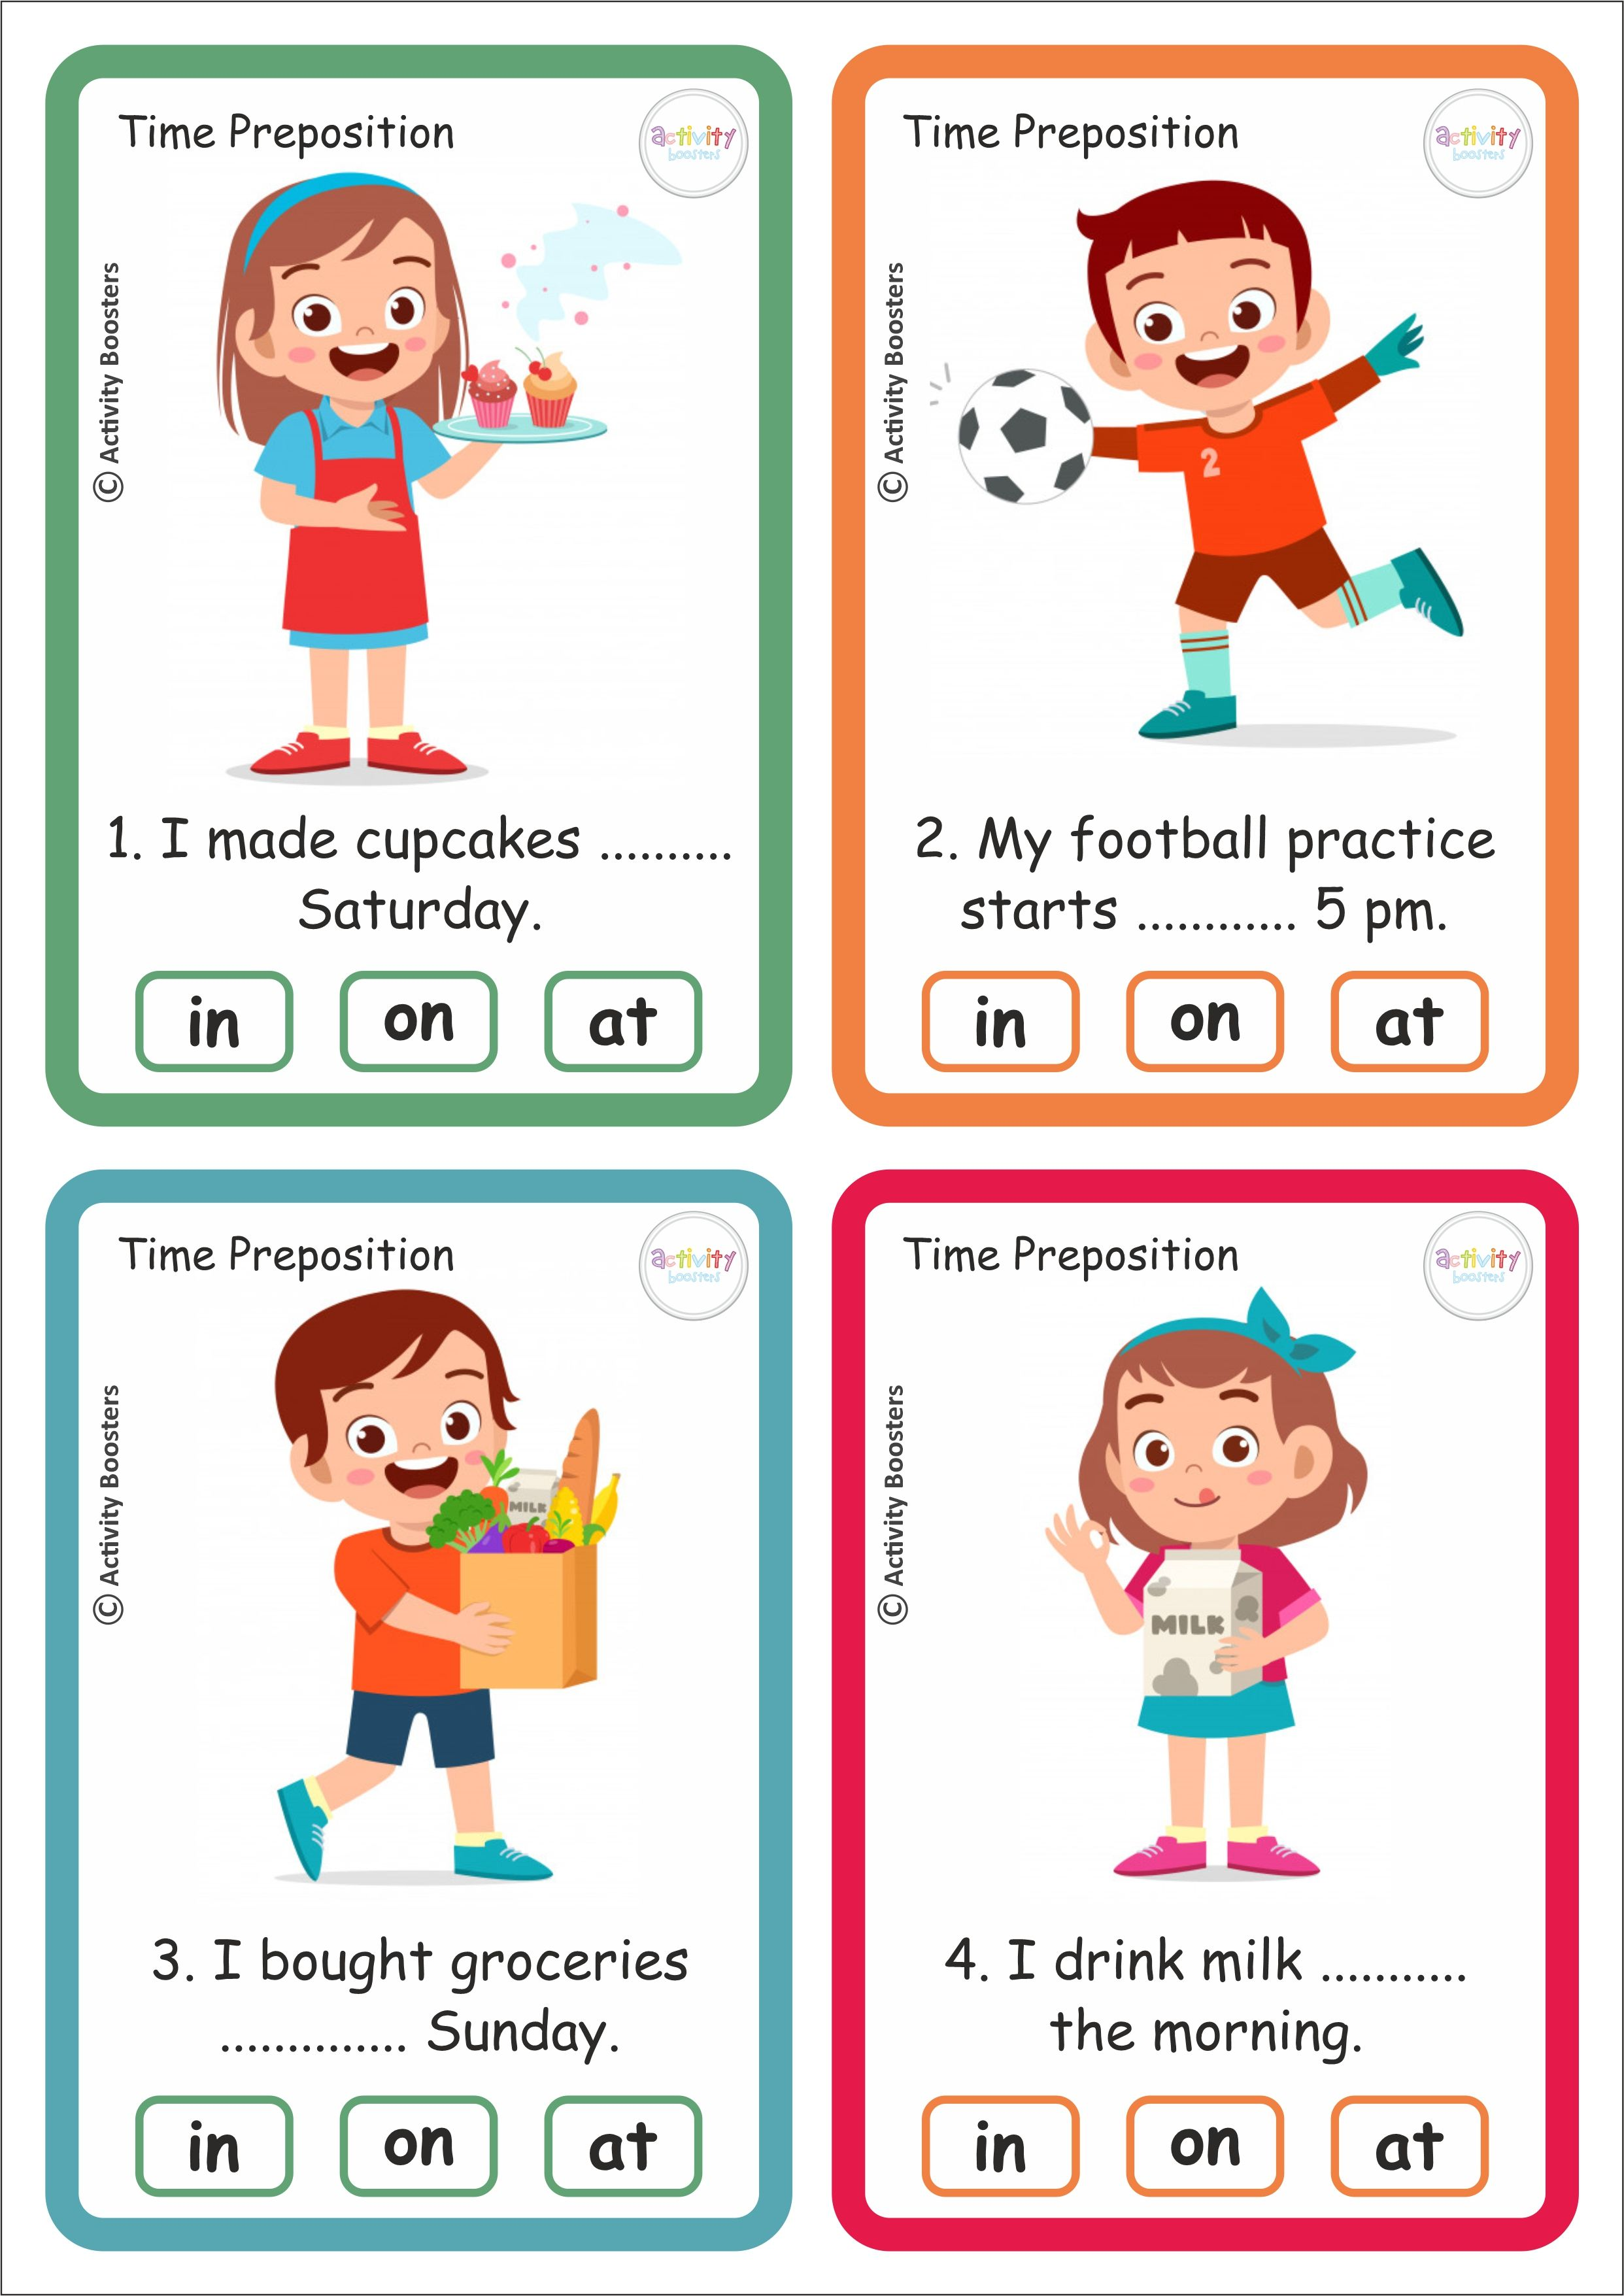 Time Preposition 40 Task Cards And Answer Sheet Download